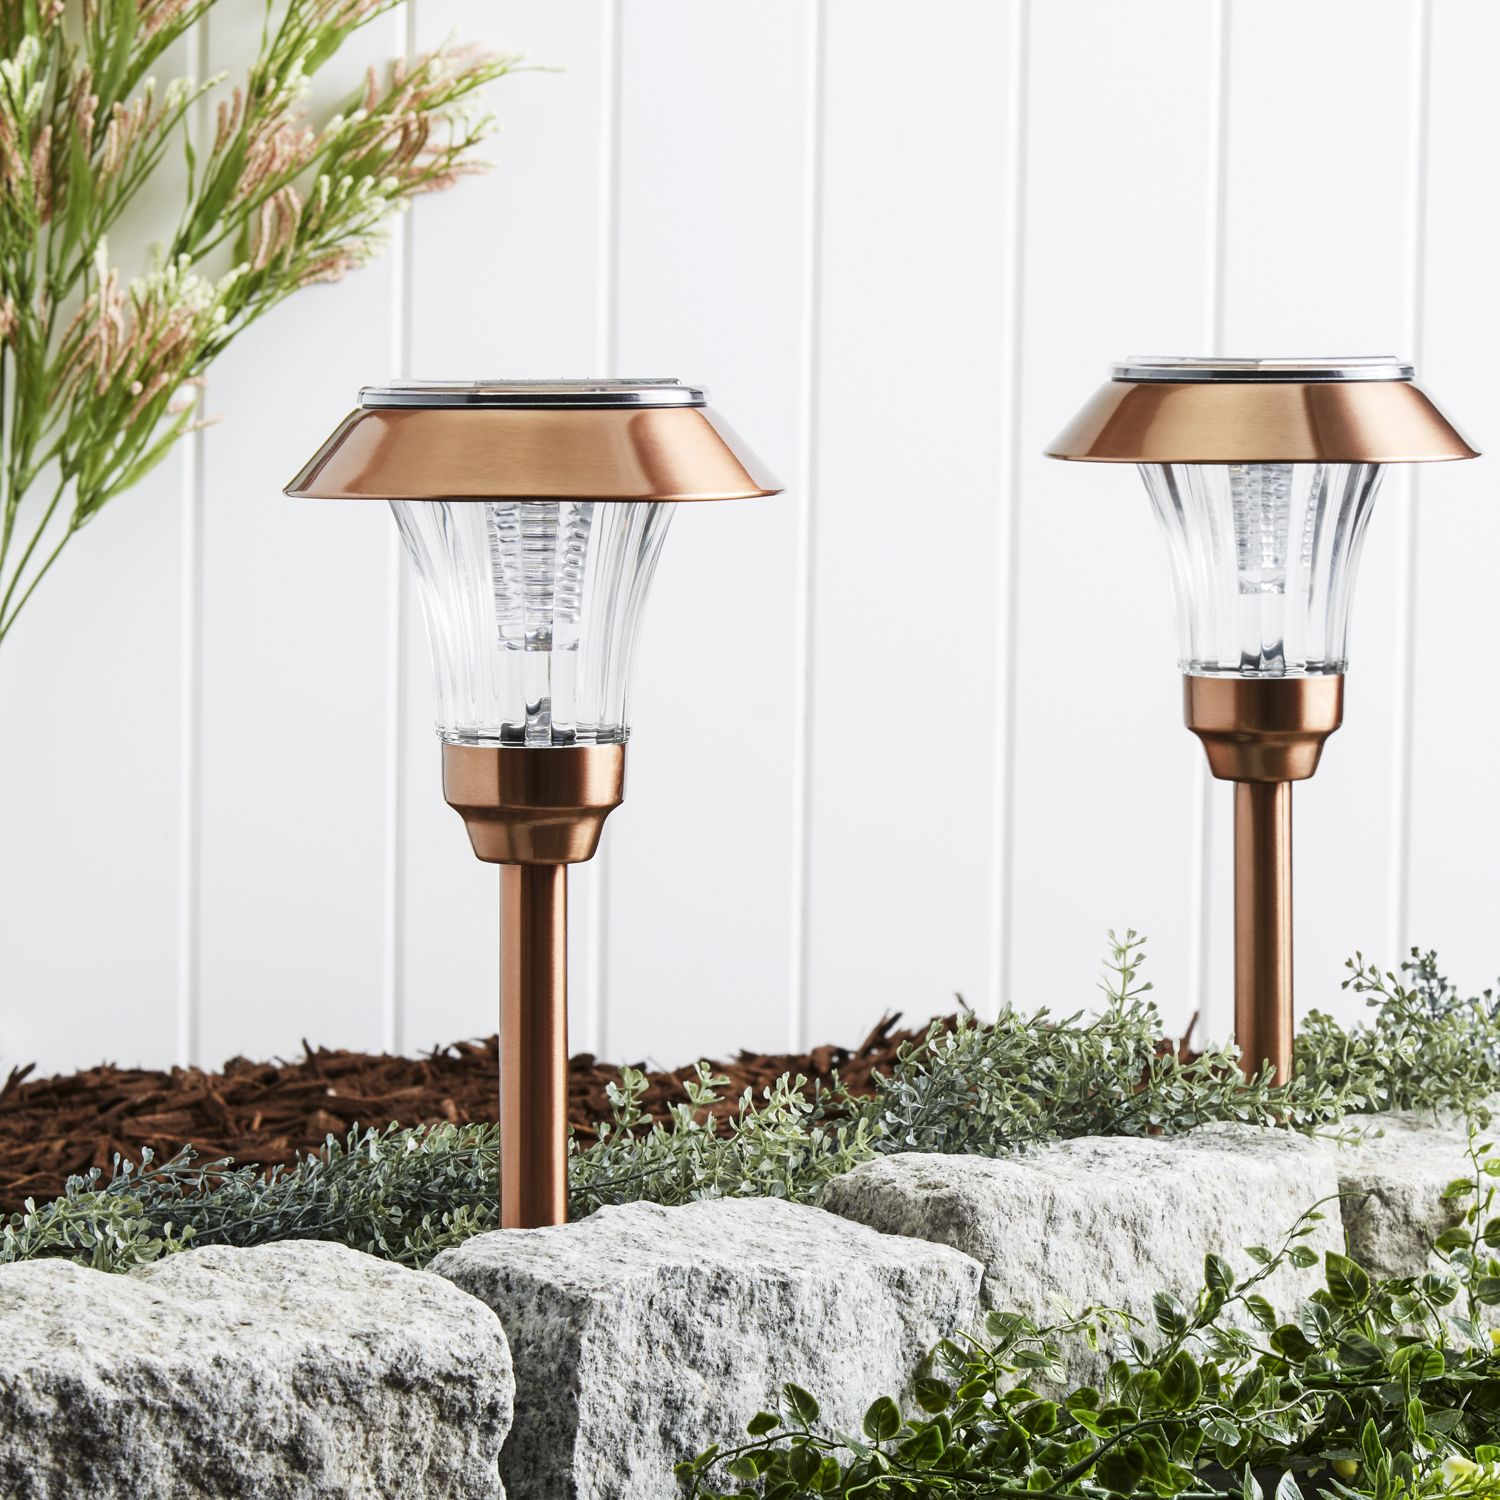 Sulis Copper Solar Path Lights Set Of 4 Solar Landscape Lighting Solar Pathway Lights Solar Path Lights